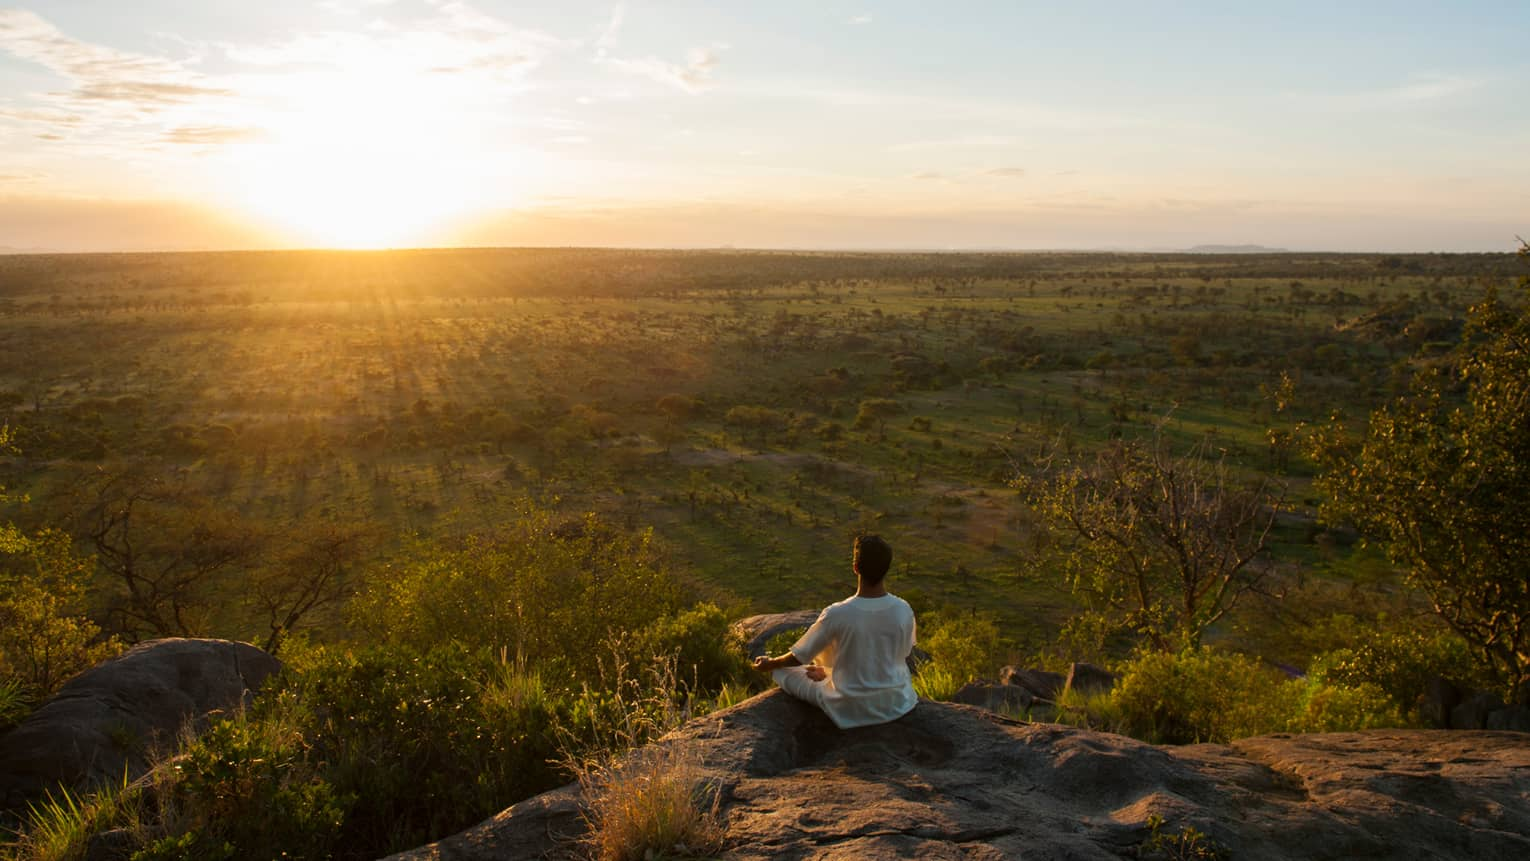 Woman sits crossed-legged, meditates on cliff overlooking Serengeti sunset